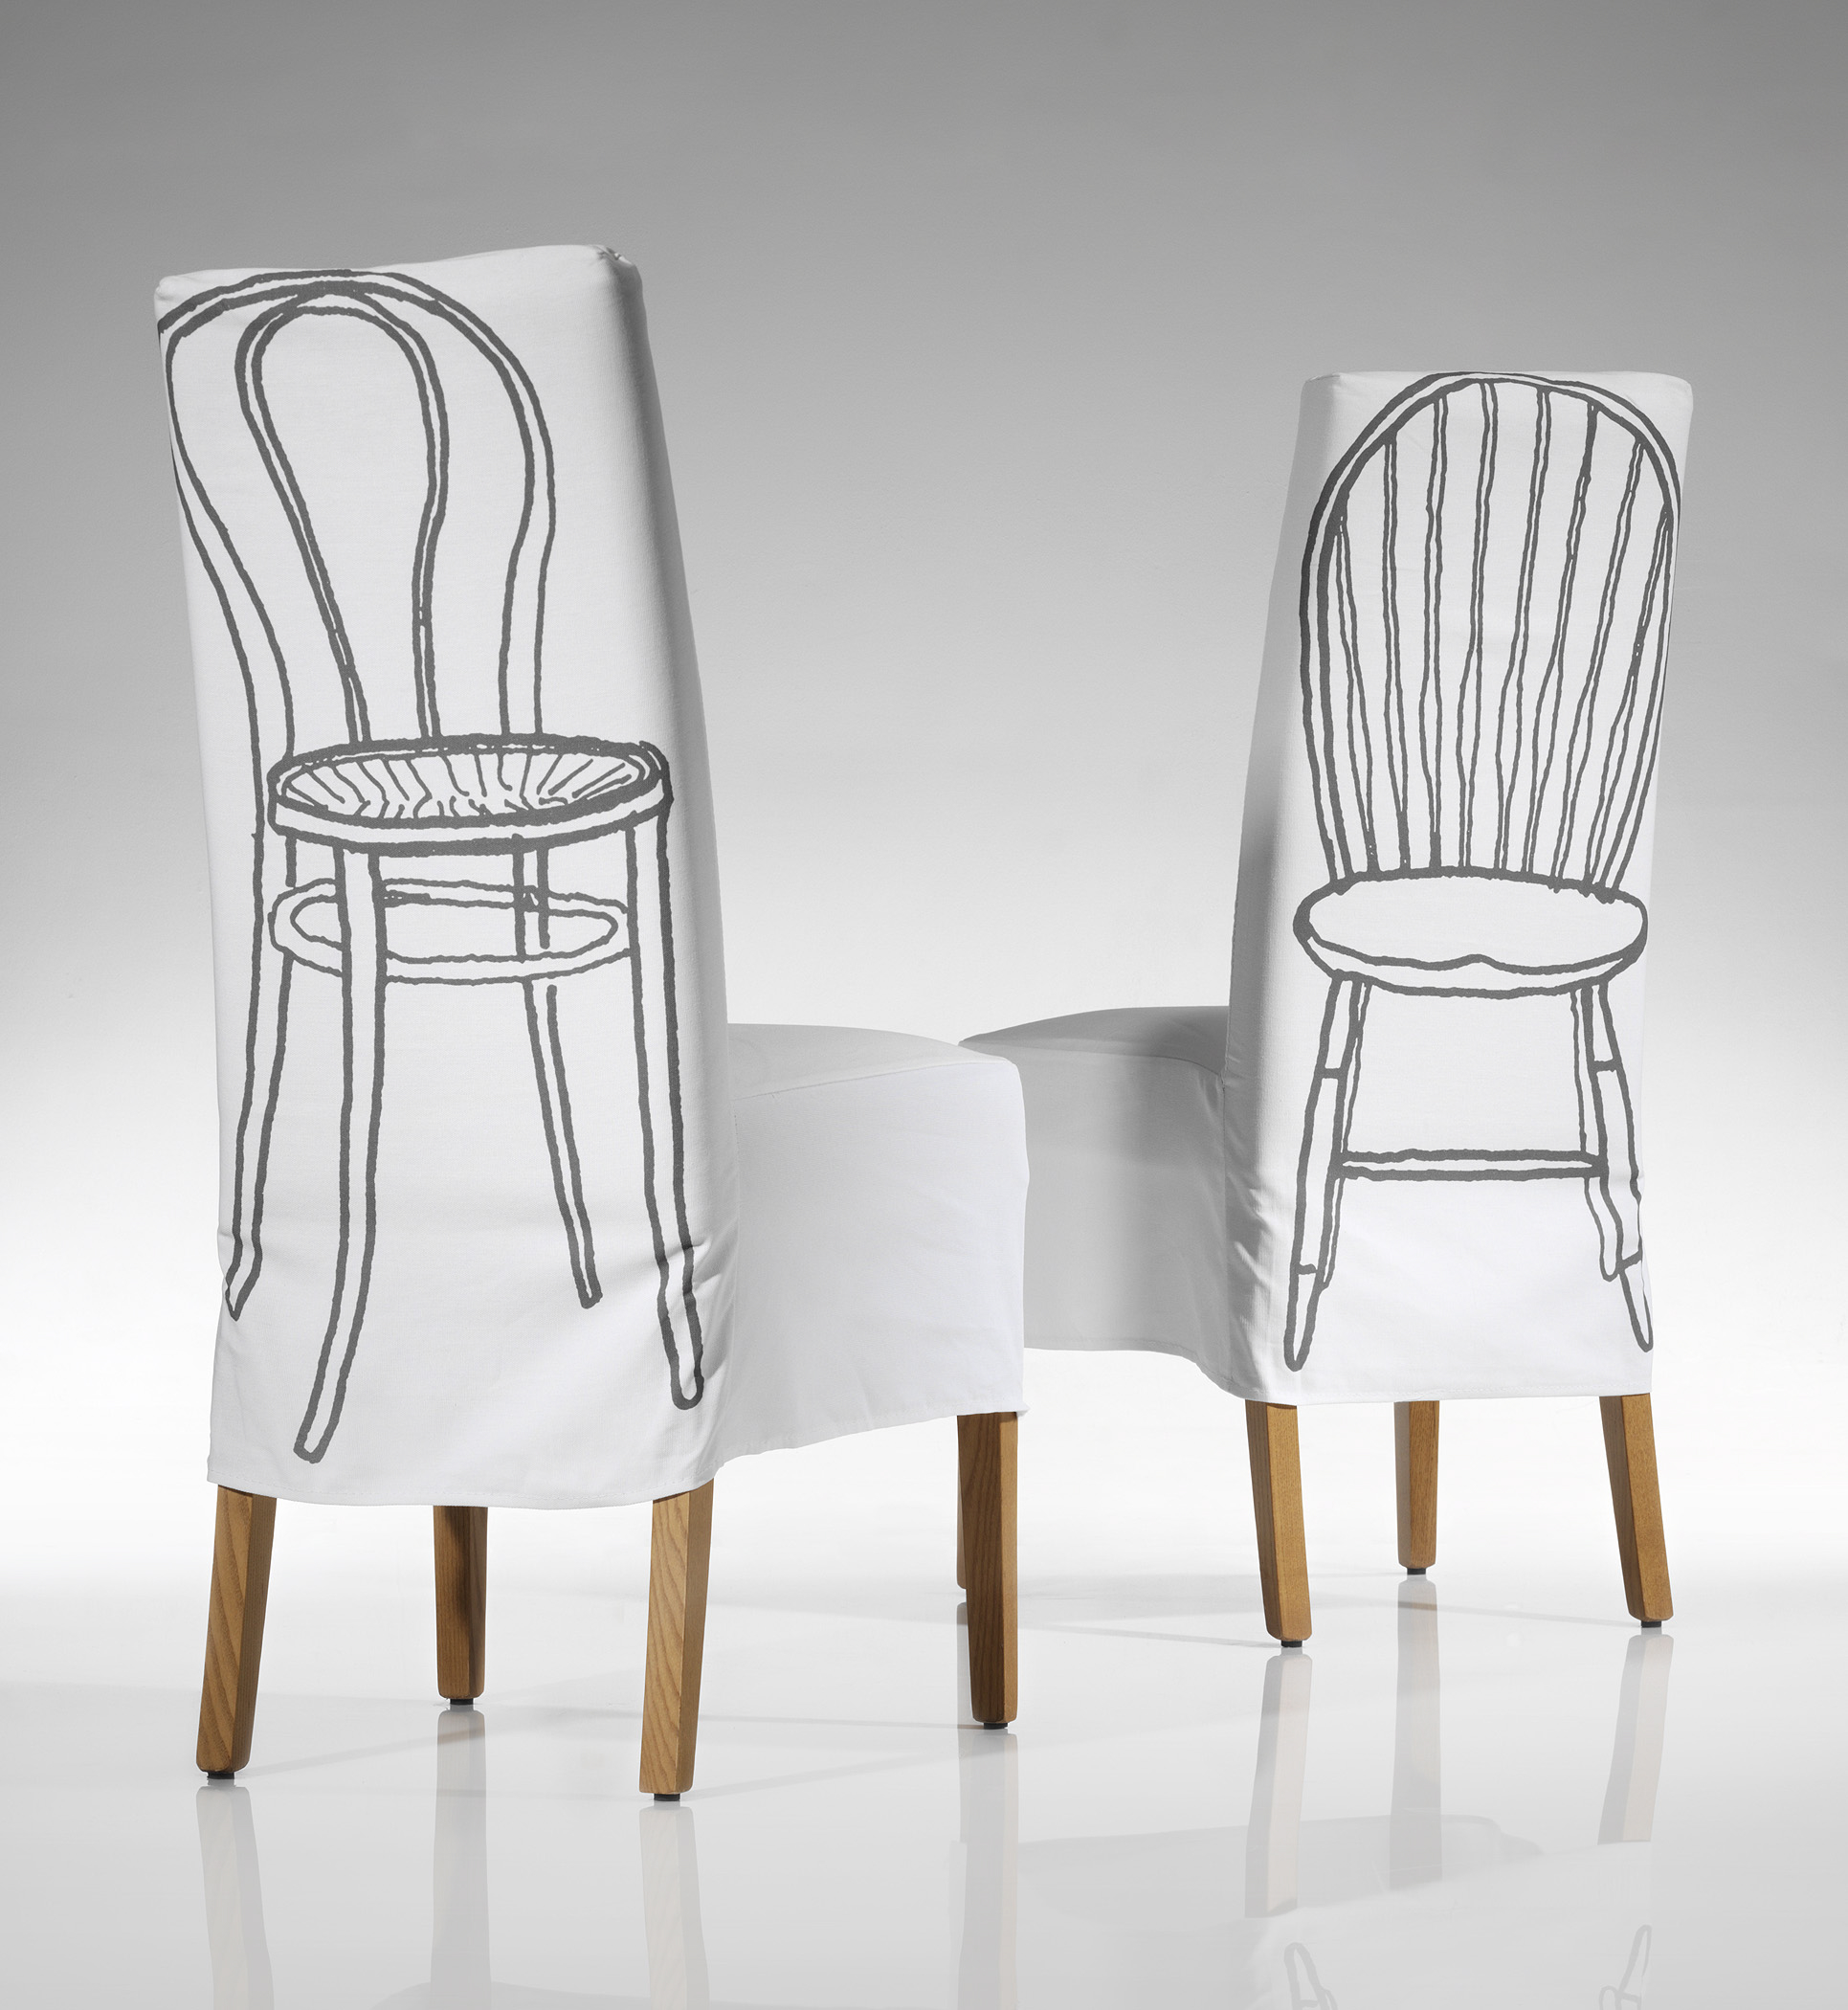 bedroom chair m&s replacement slings australia conran m s what going on at the blog they